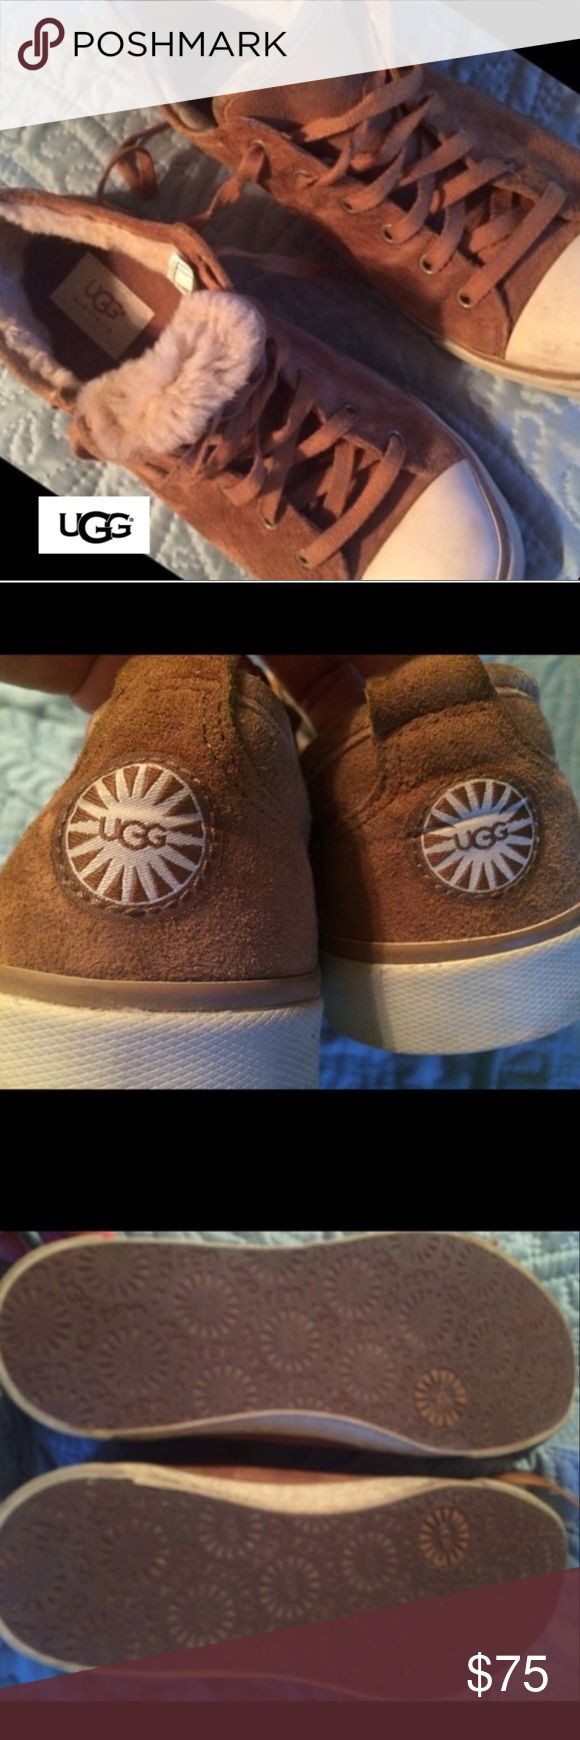 Womens Suede UGG Sneakers, Sz 8.5 EUC Excellent condition!  Barely worn-NEVER outside.  This winter just wasn't cold enough :( Original laces, no box.  Smoke-free home. UGG Shoes Sneakers